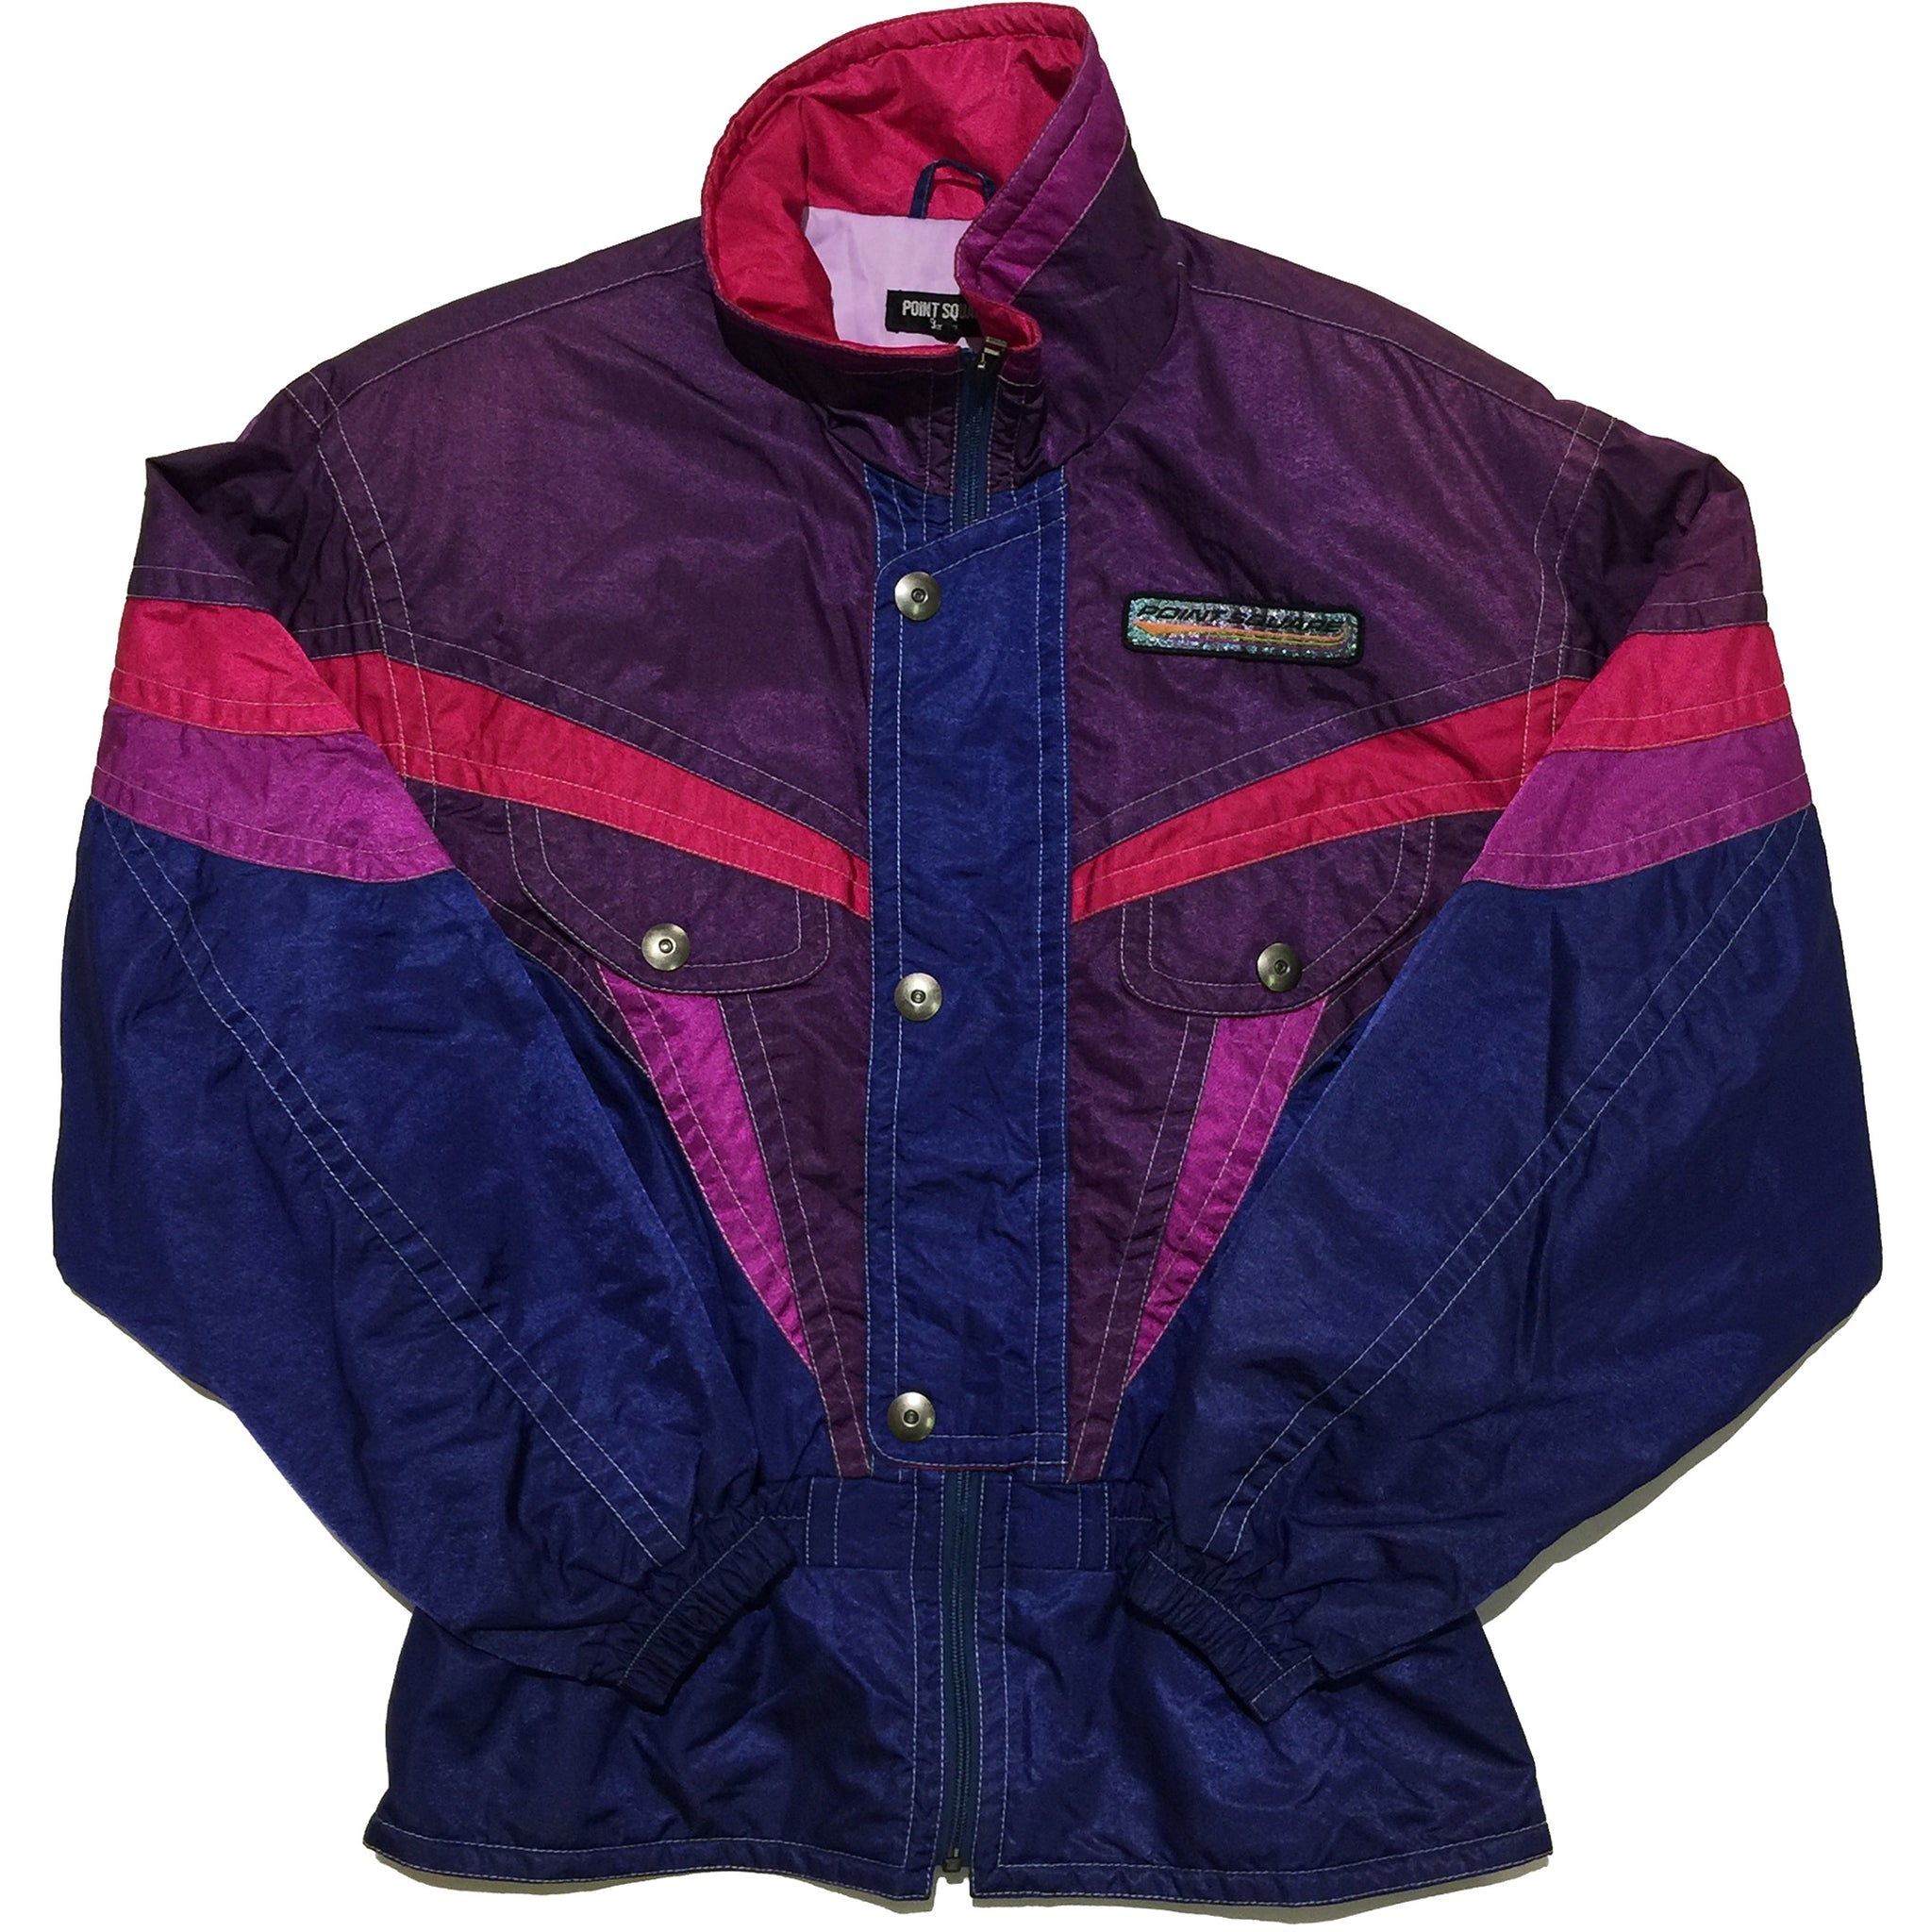 Point Square Purple, Pink, Blue Jacket